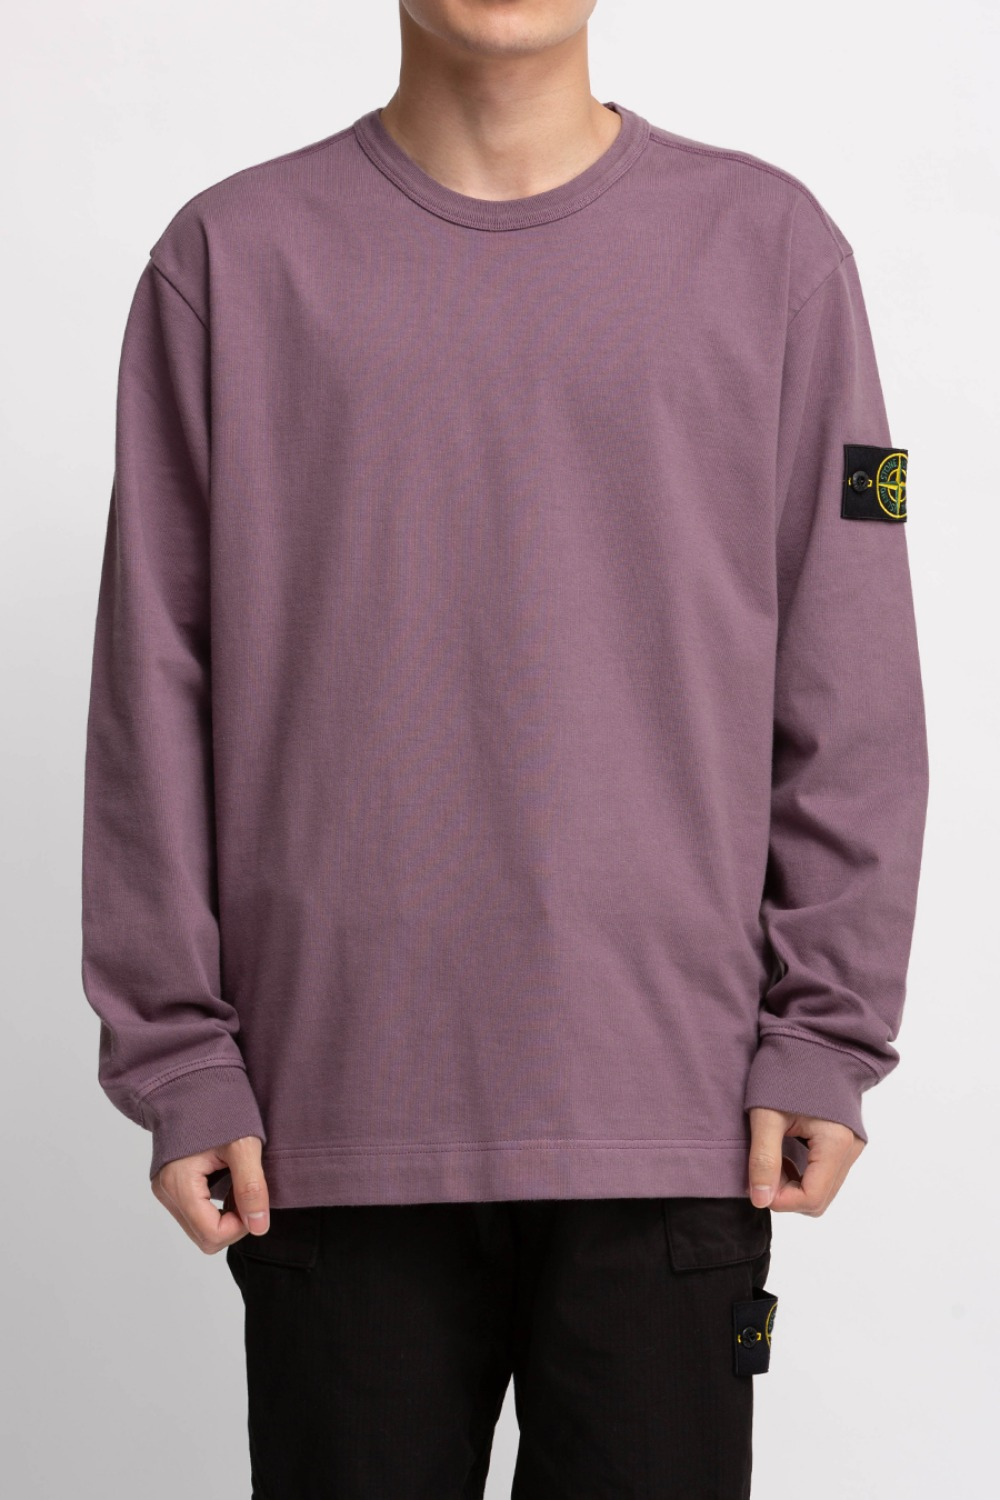 GARMENT DYED CREWNECK SWEATSHIRT PURPLE